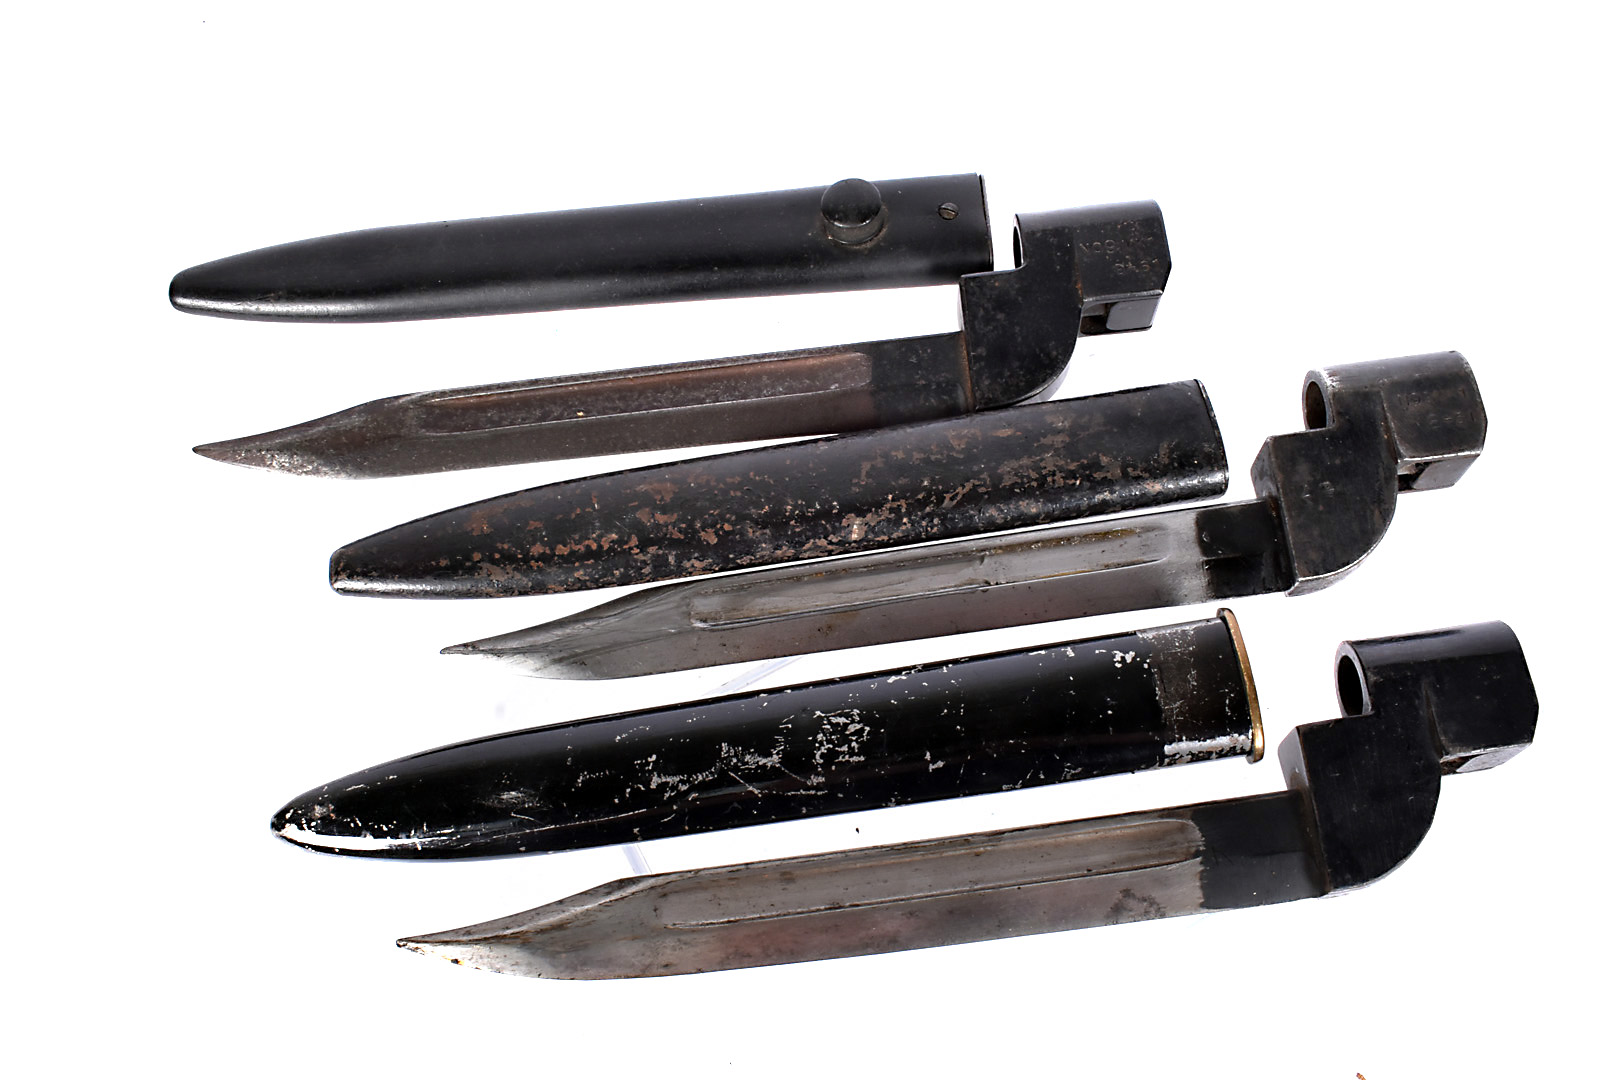 Three No.9 MkI bayonets and scabbards, two stamped with broad arrows, one marked D-51 another D-